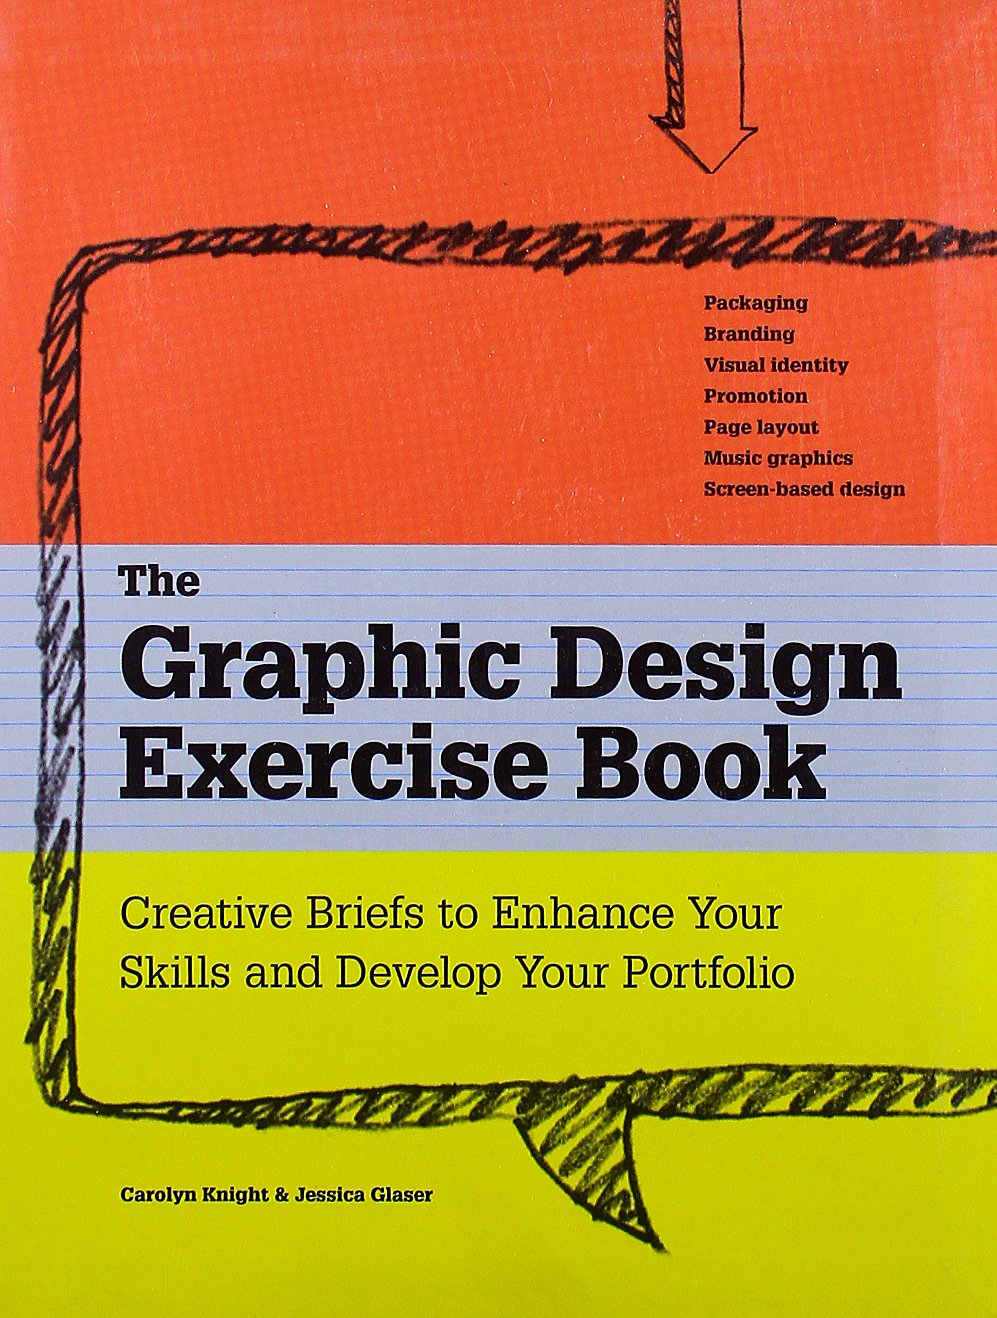 the graphic design exercise book jessica glaser 9781600614637 the graphic design exercise book jessica glaser 9781600614637 com books